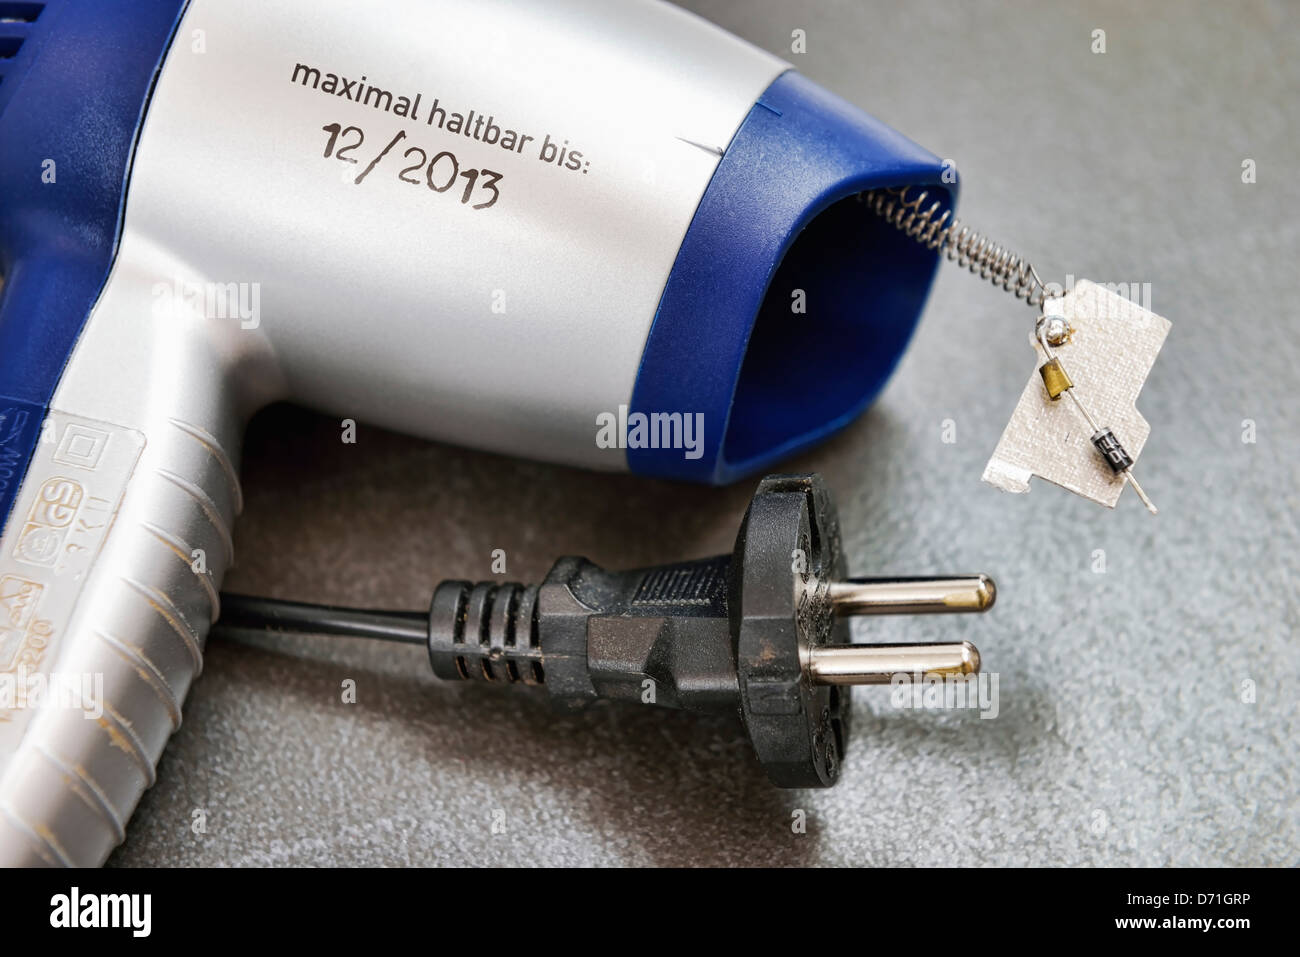 Hairdrier with built-in wearing part and durability date, symbolic photo - Stock Image